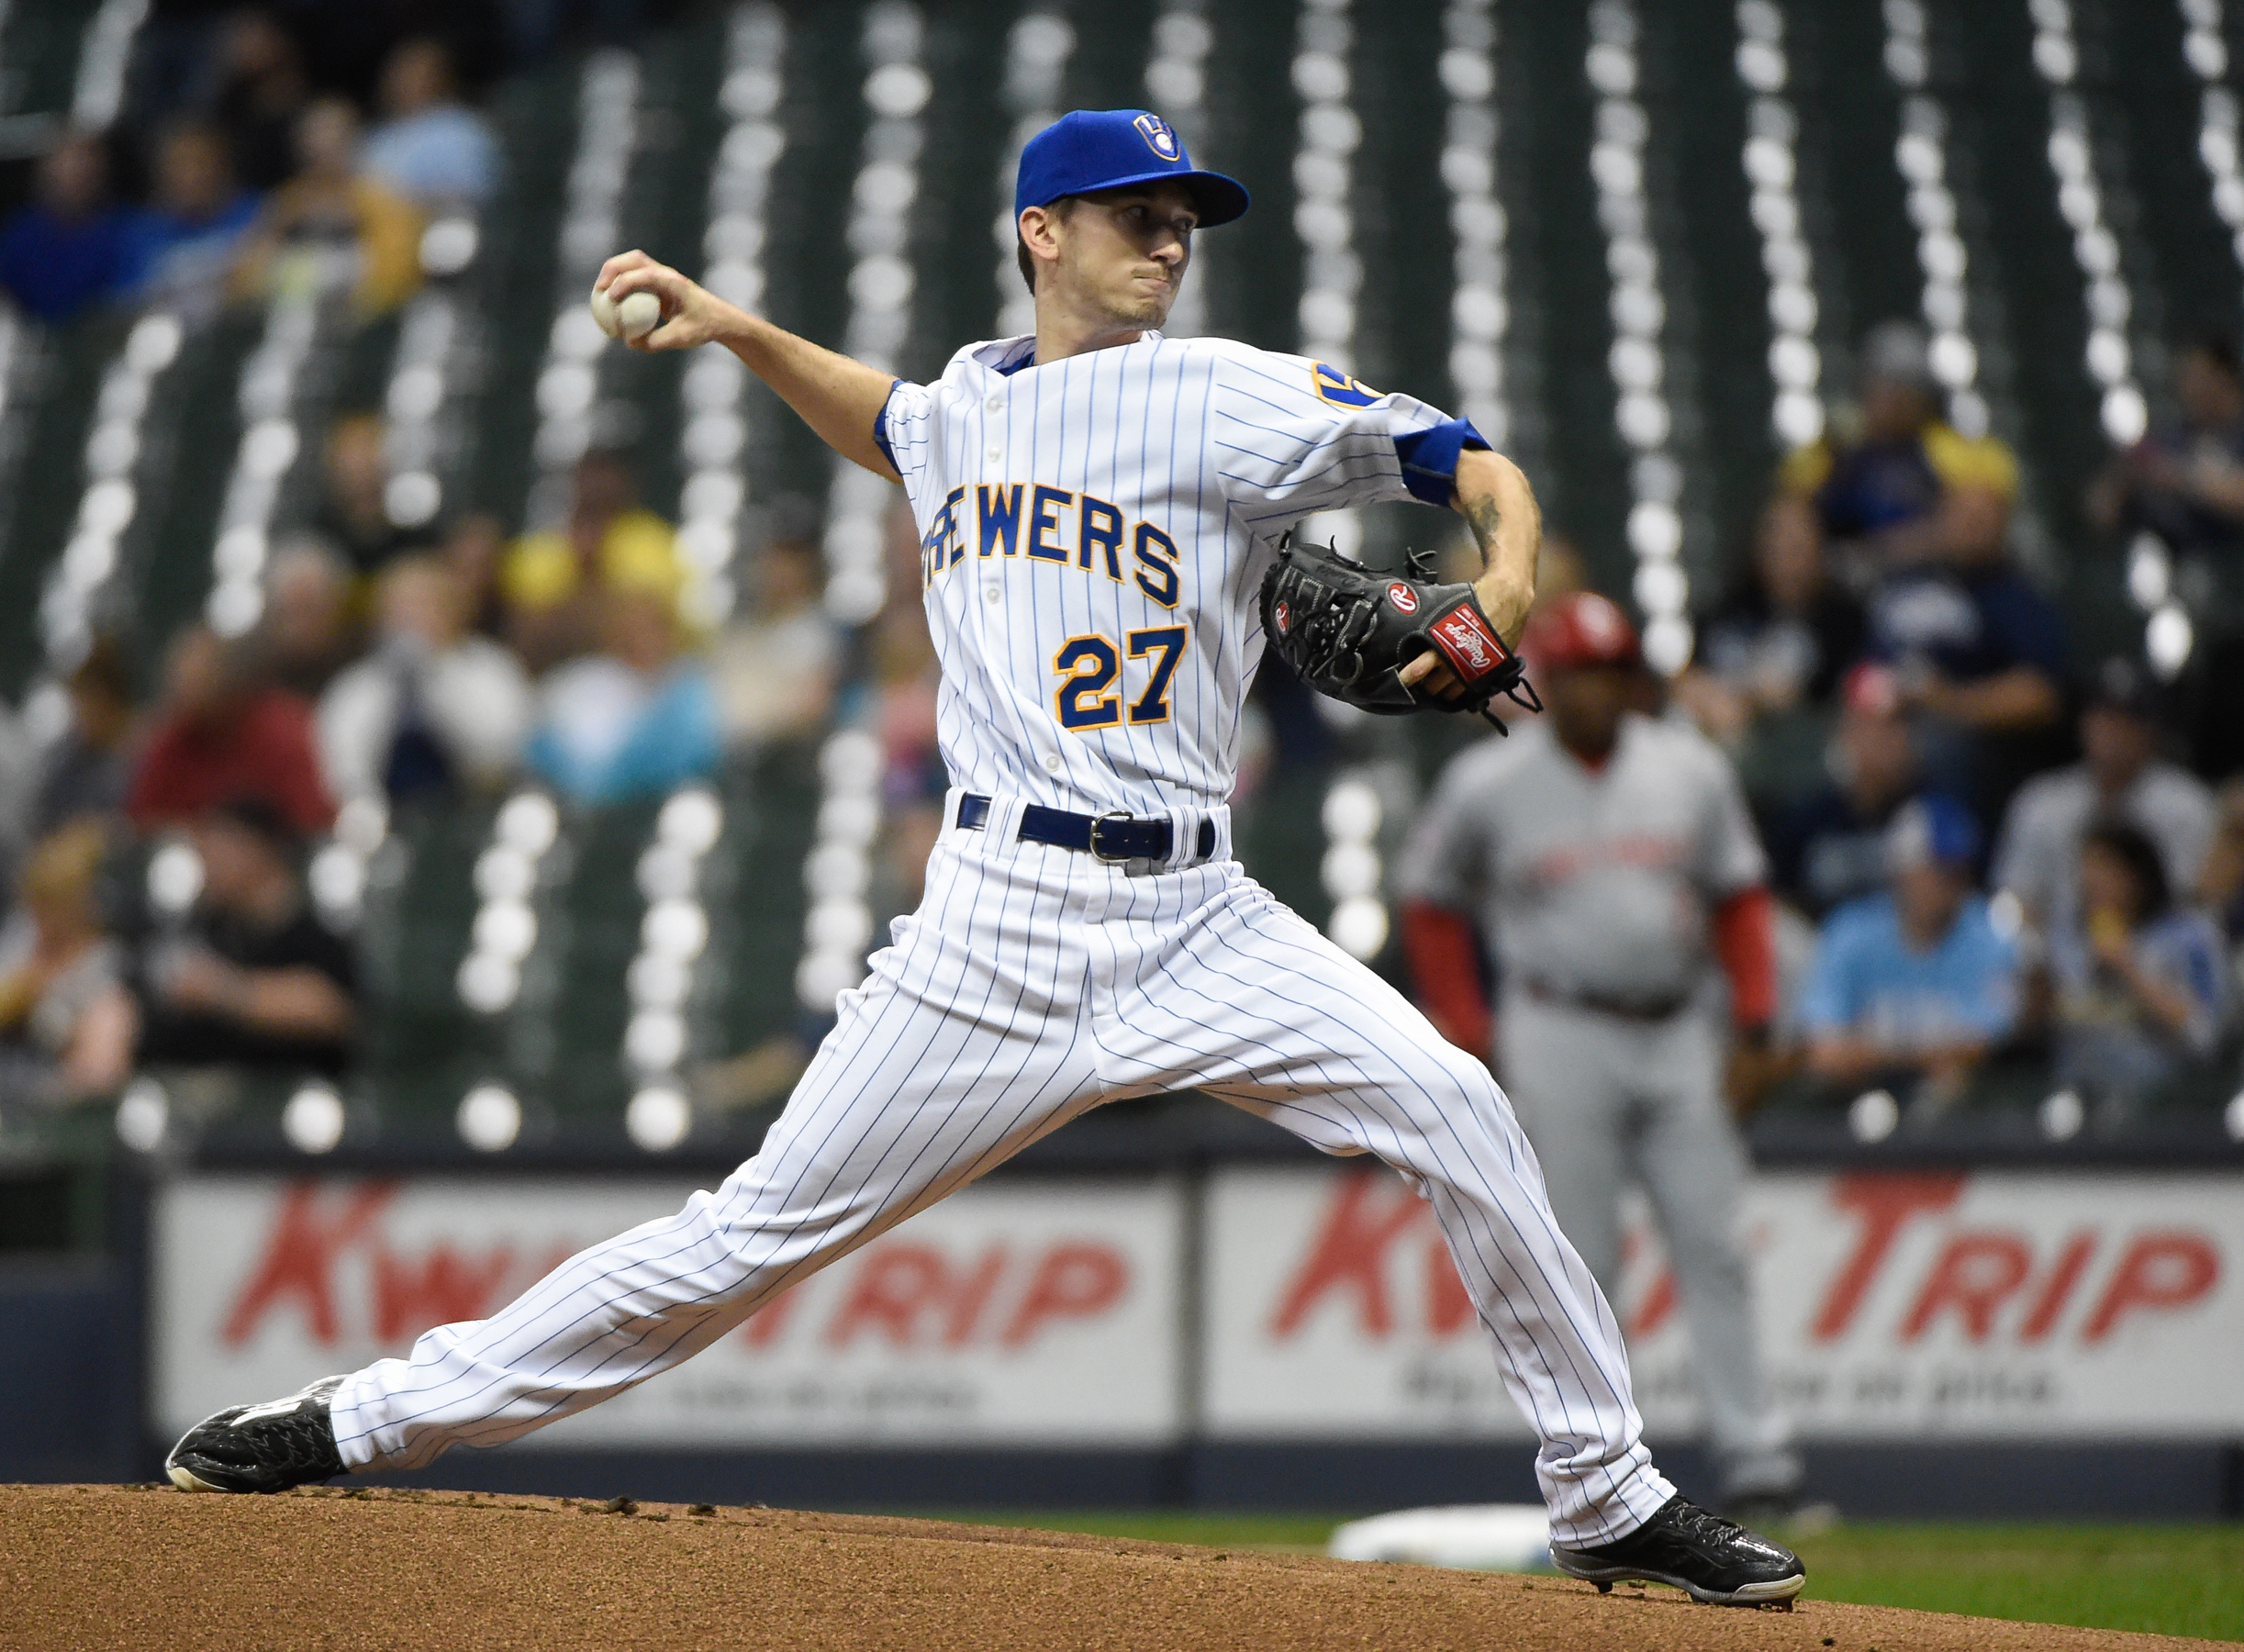 8809951-mlb-cincinnati-reds-at-milwaukee-brewers